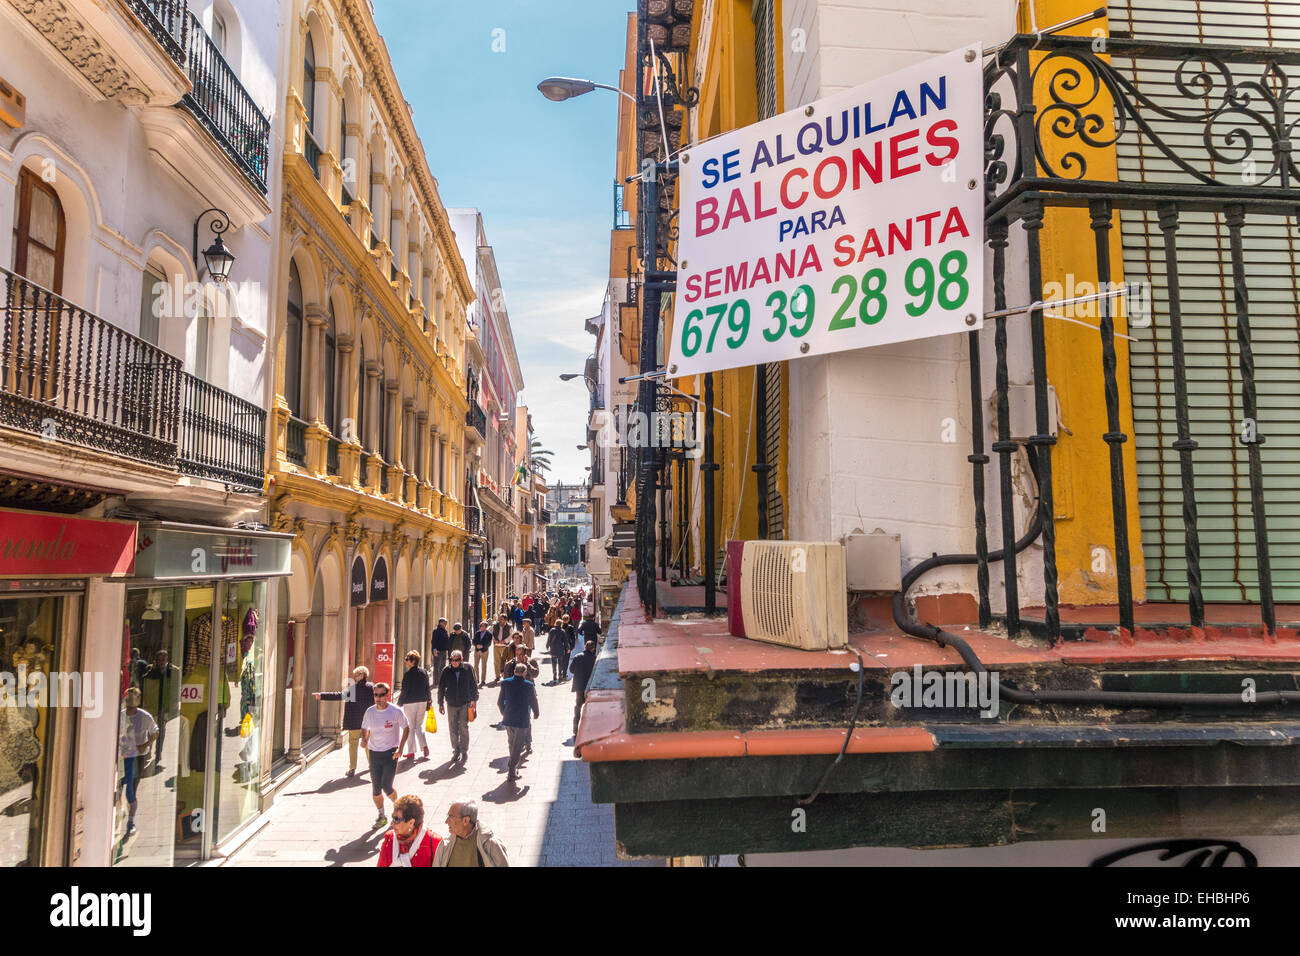 Sevilla Winkelen Seville Spain Sevilla Sign Balcony For Rent In The Run Up